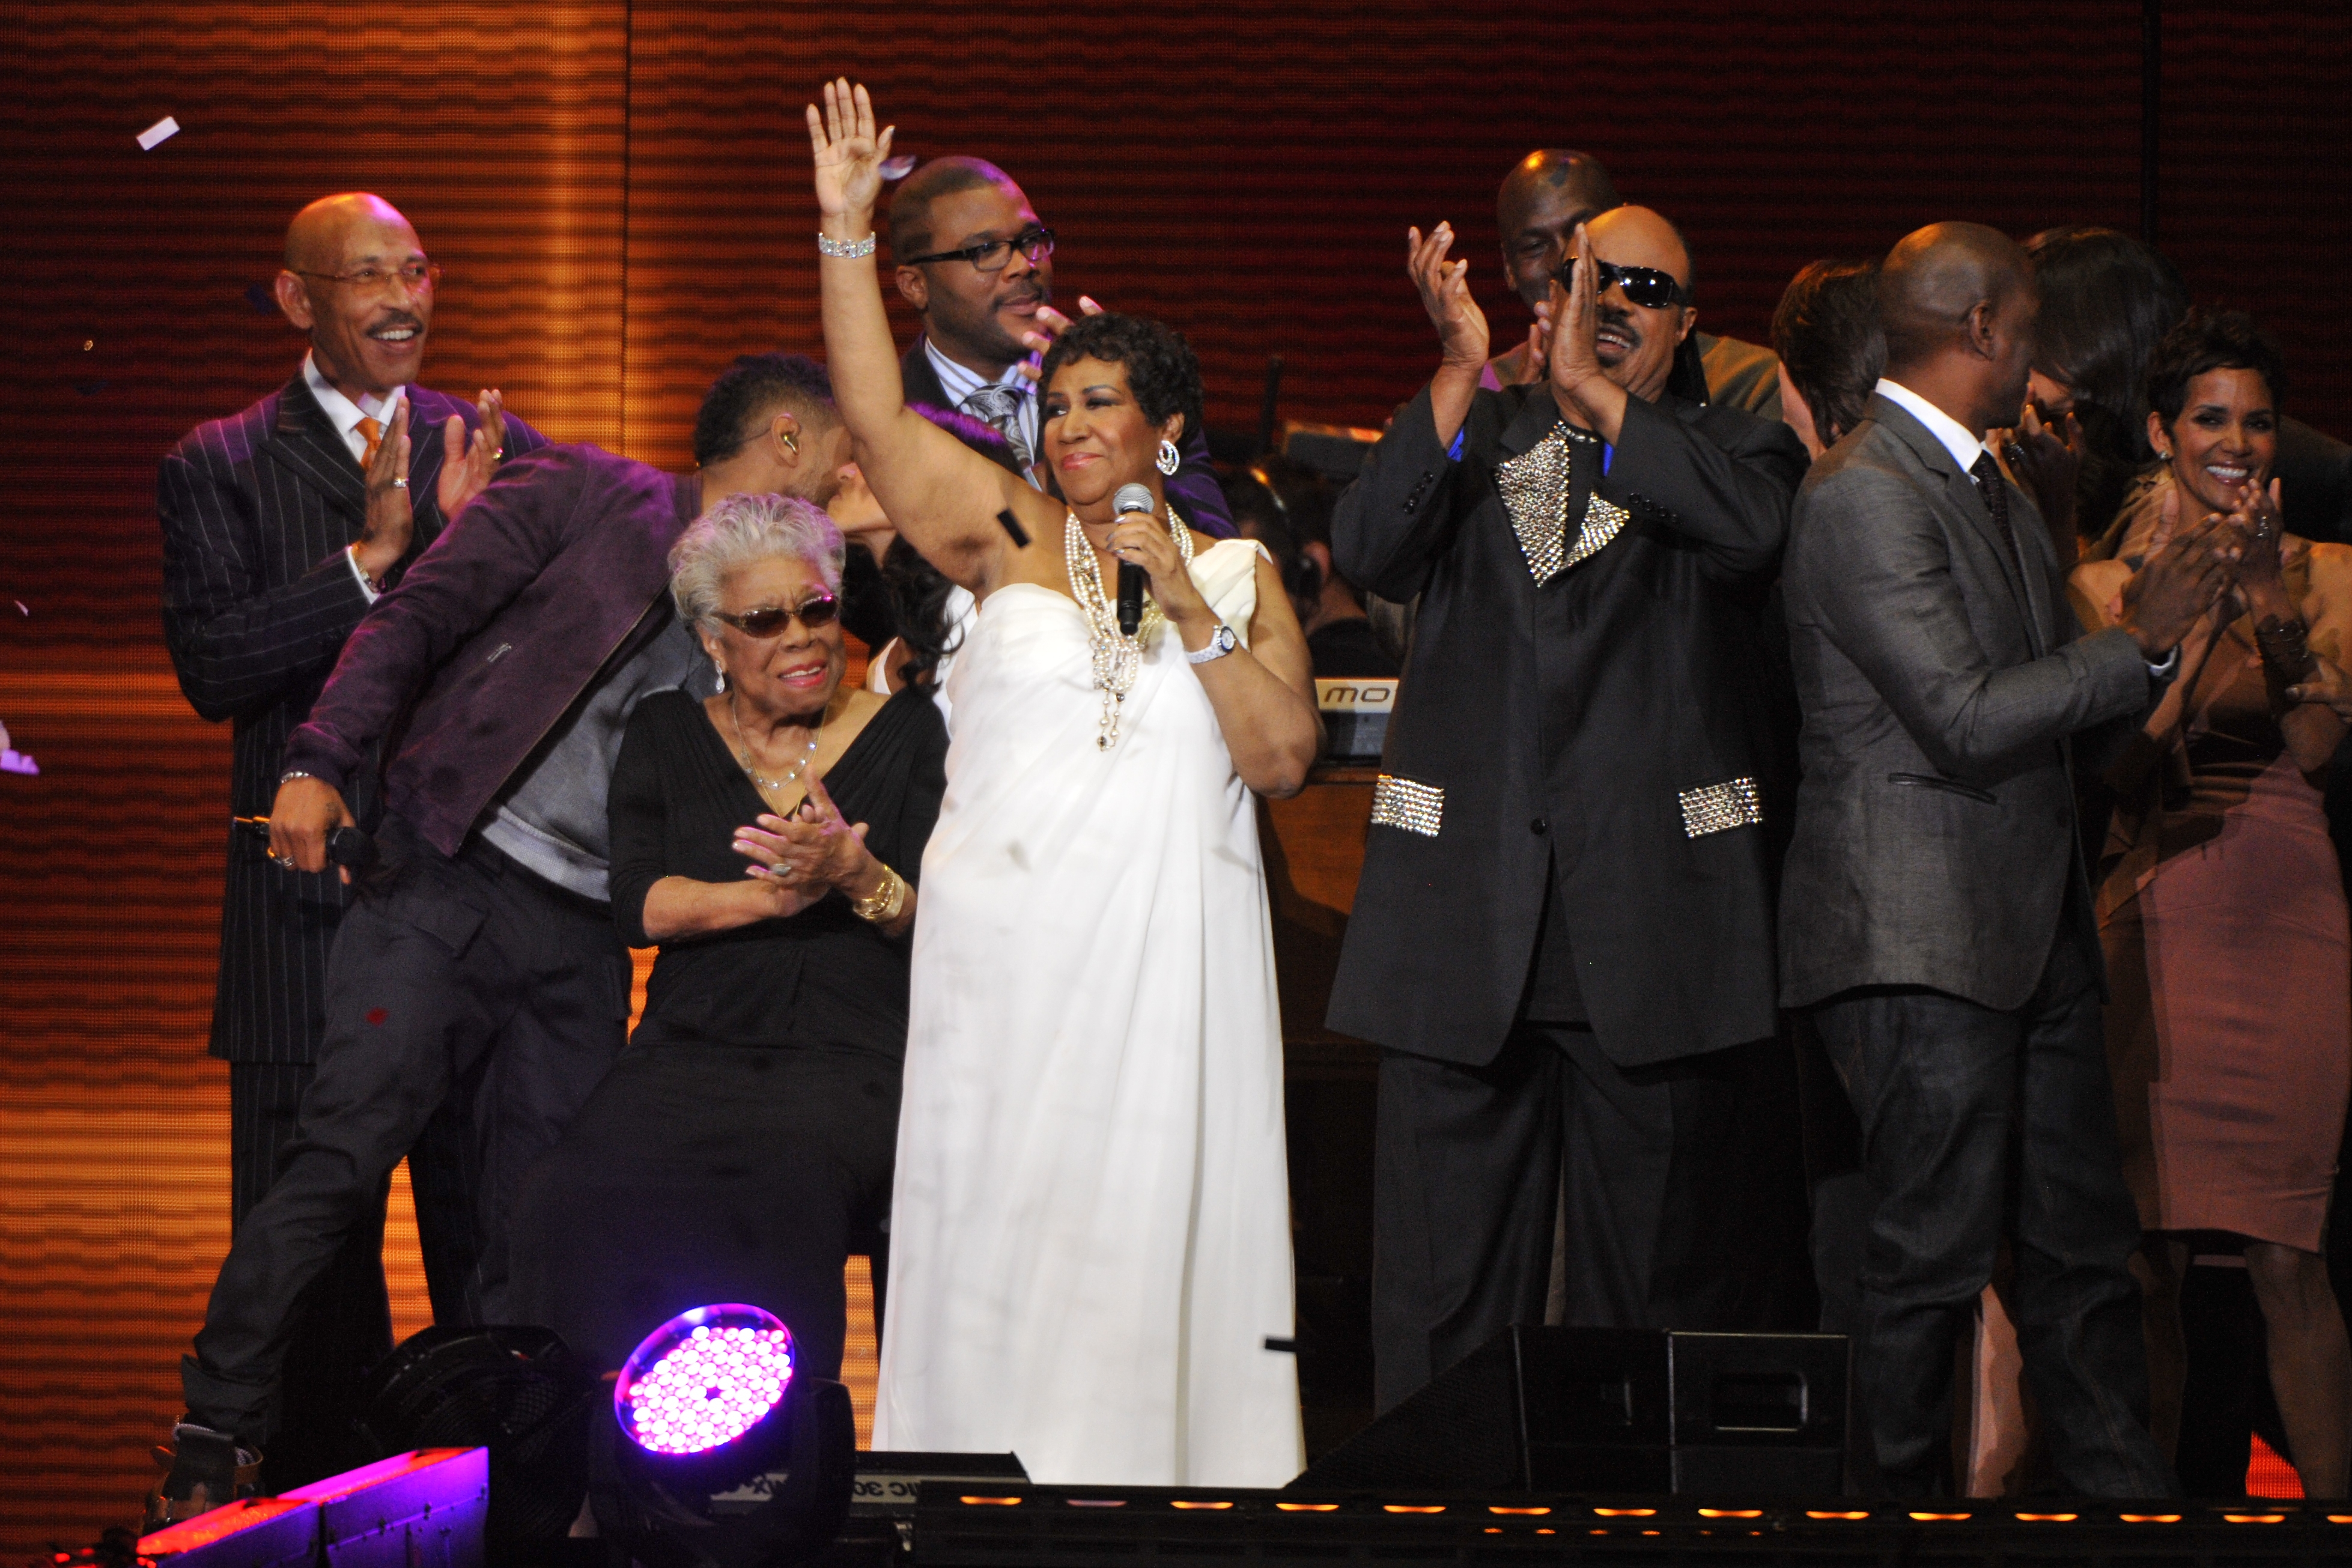 Aretha Franklin,{ }Stevie Wonder and several others during 'Surprise Oprah! A Farewell Spectacular' at the United Center in Chicago, Illinois. (When: May 17 2011. Credit: Ray Garbo/WENN.com)